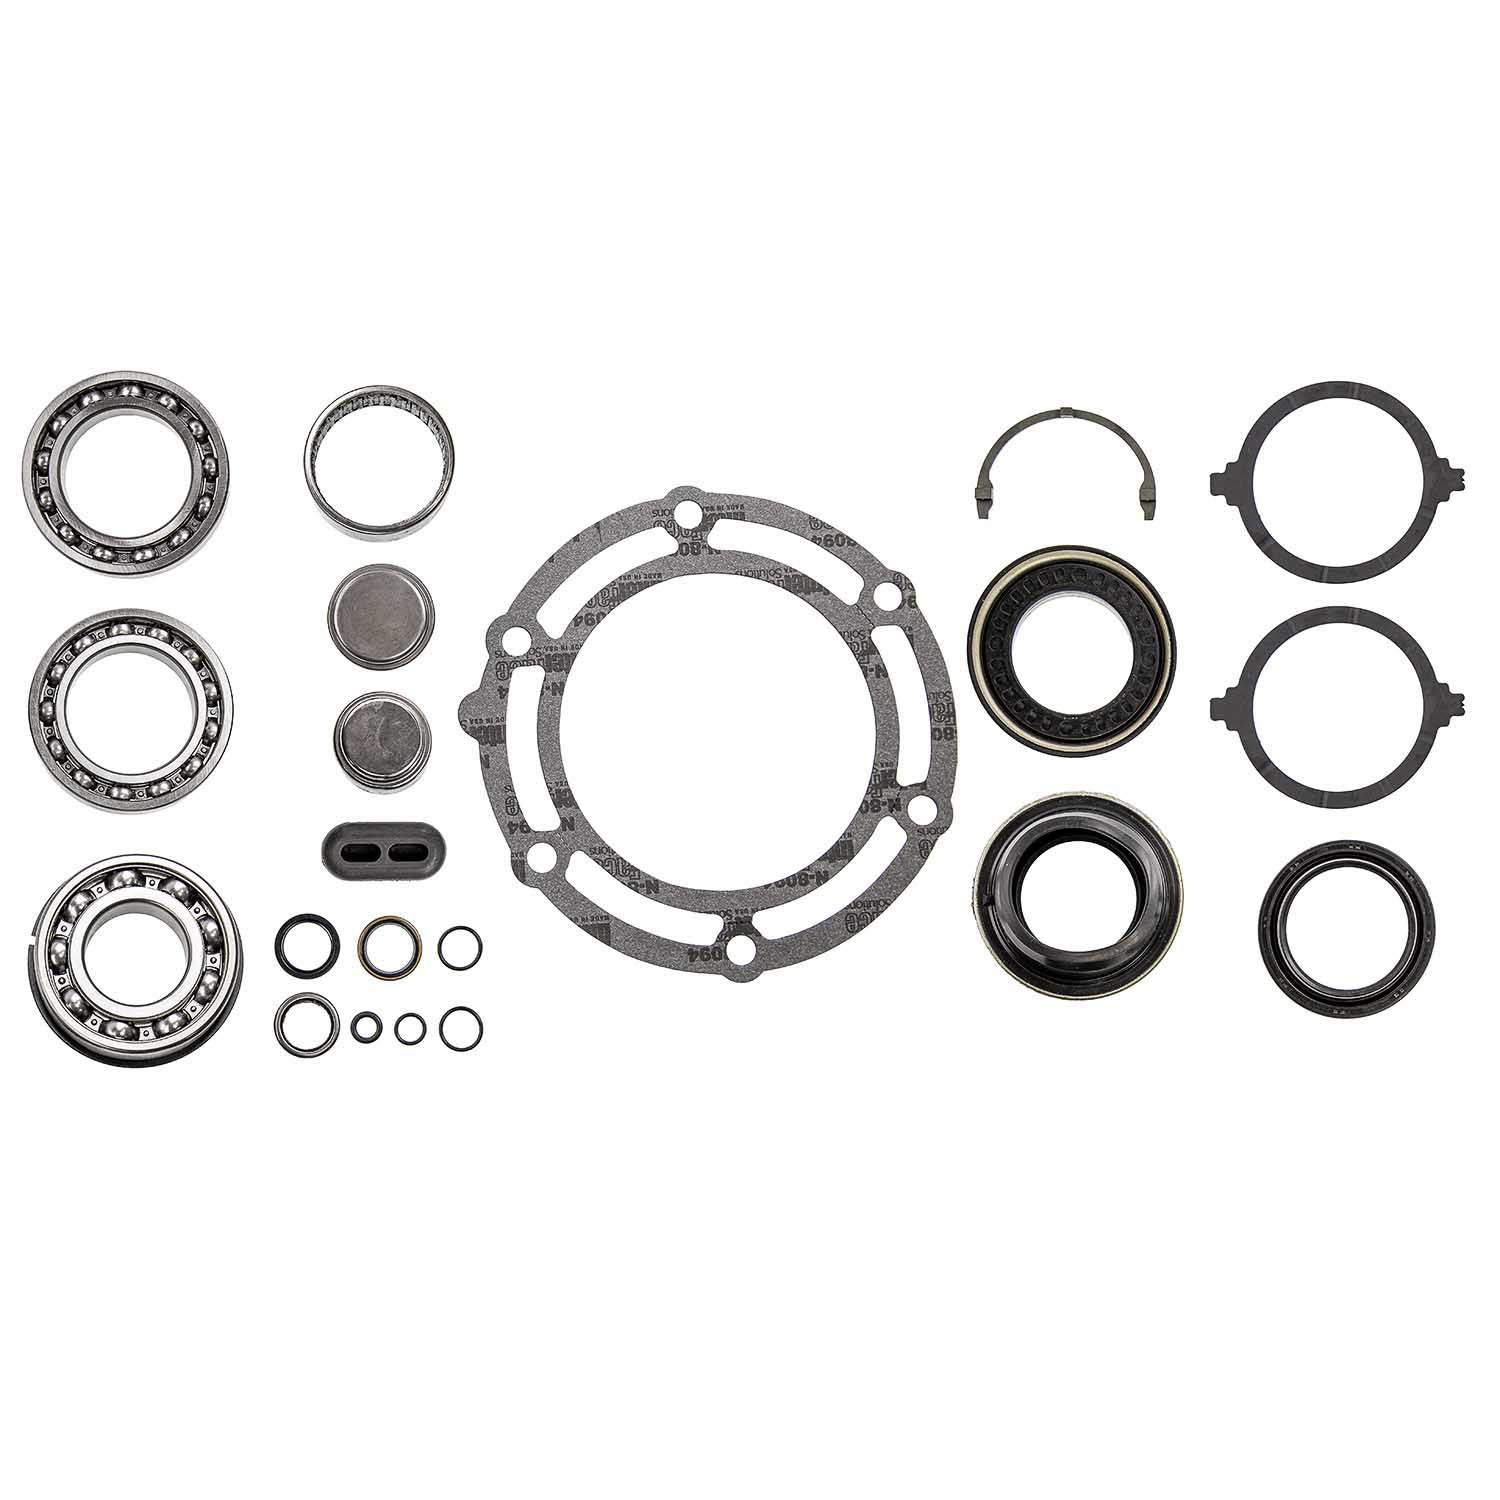 Rigid Axle New Process NP263XHD Transfer Case Bearing Gasket and Seal Kit